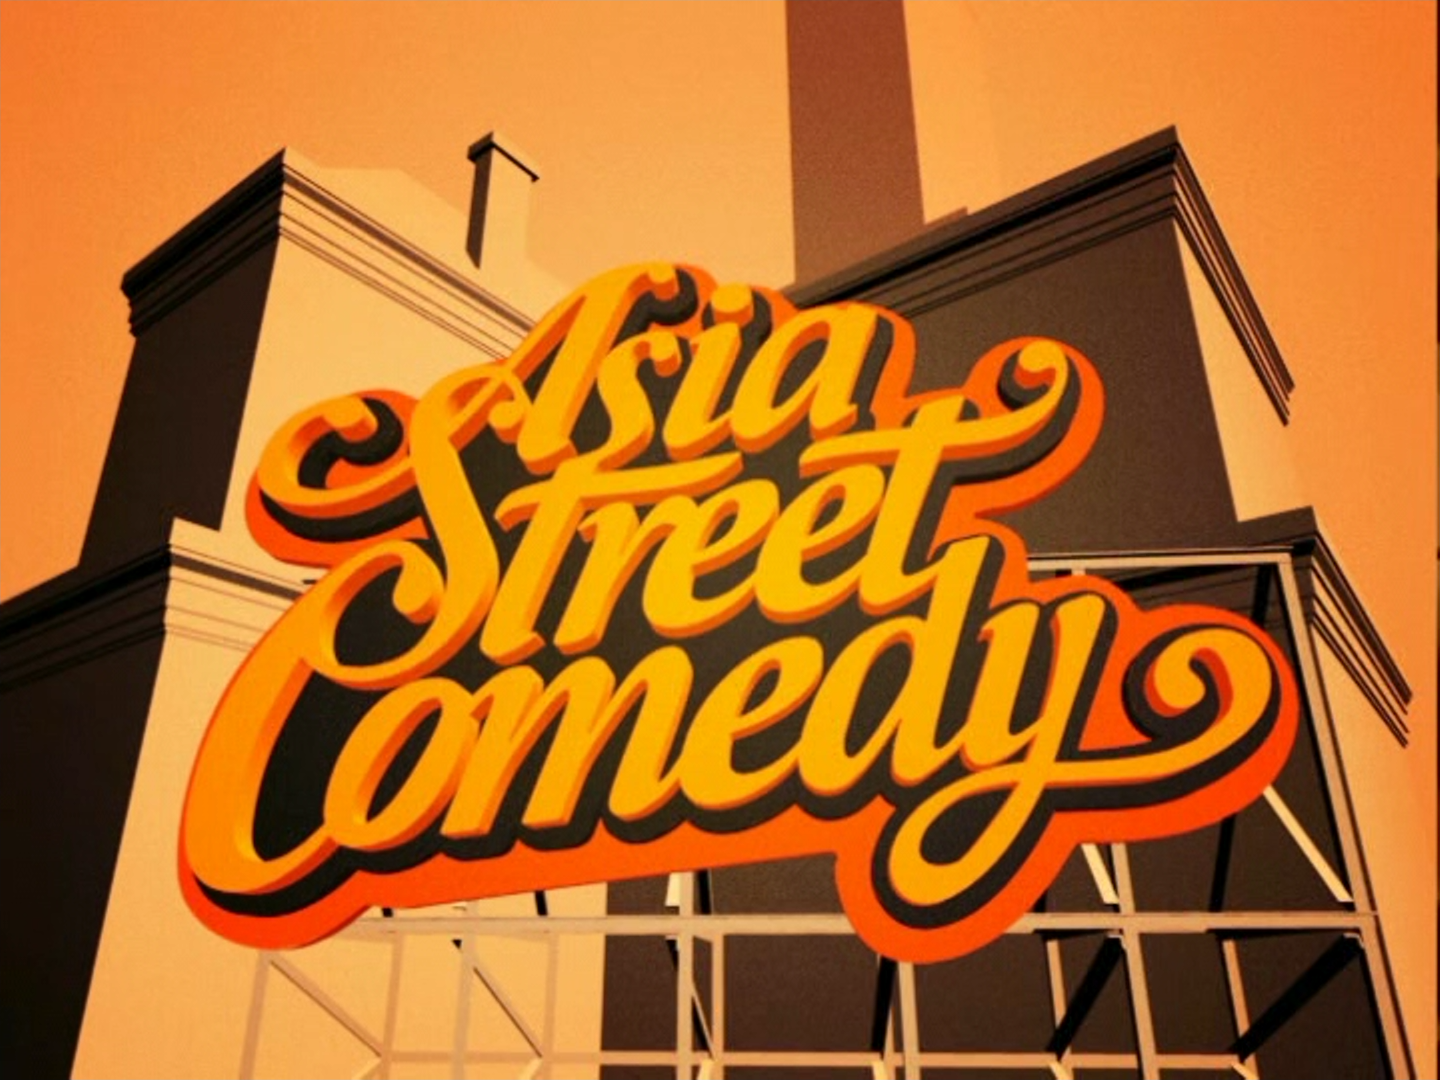 5/15: Asia Street Comedy